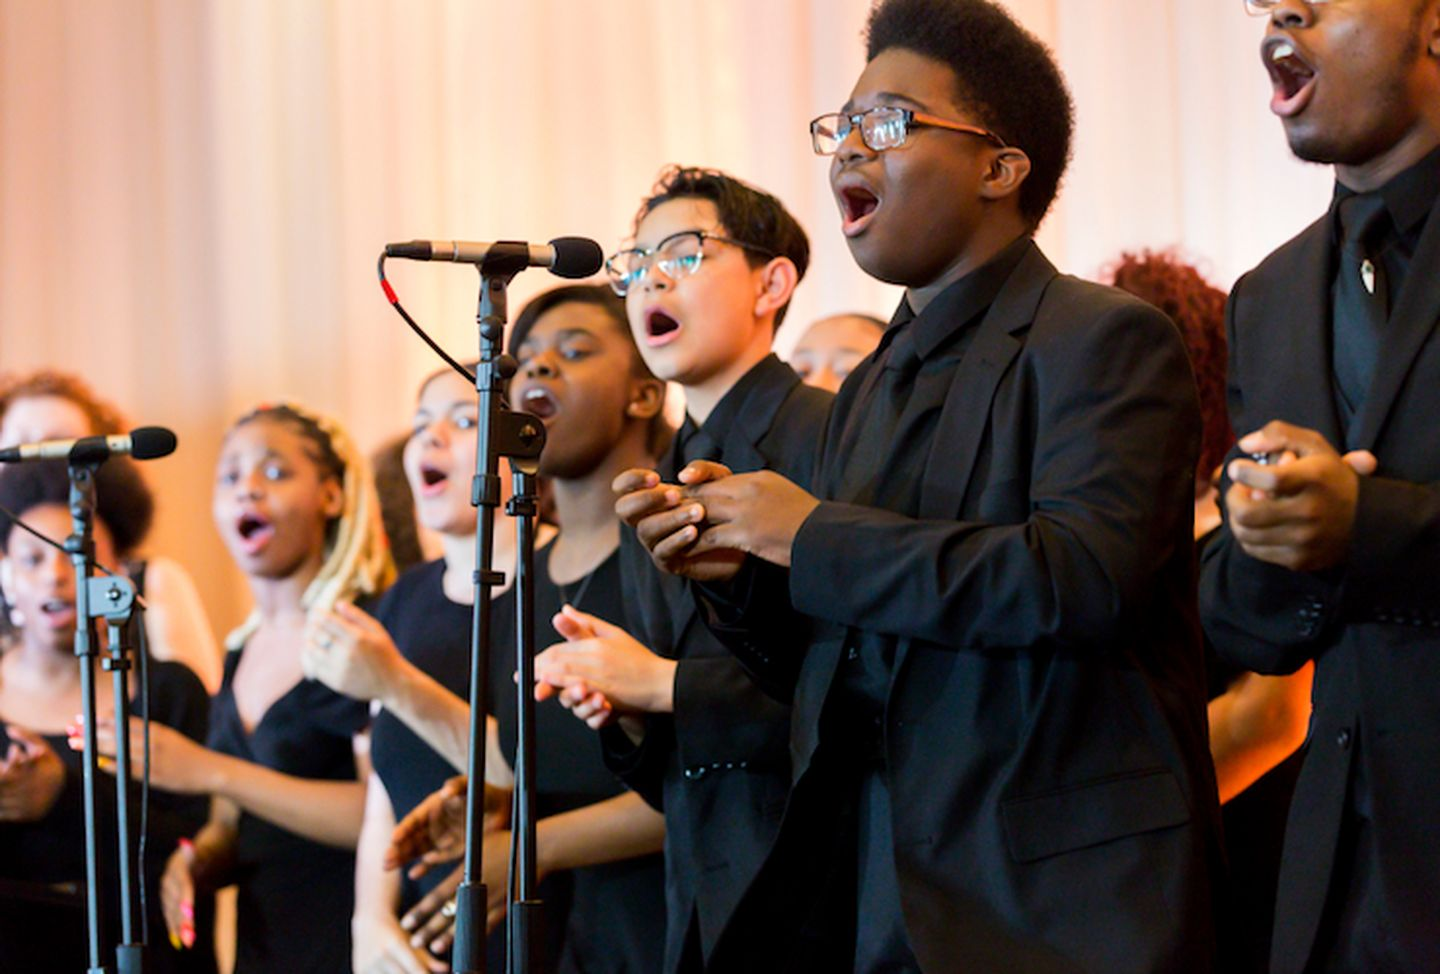 A bunch of teens singing together for a music performance.